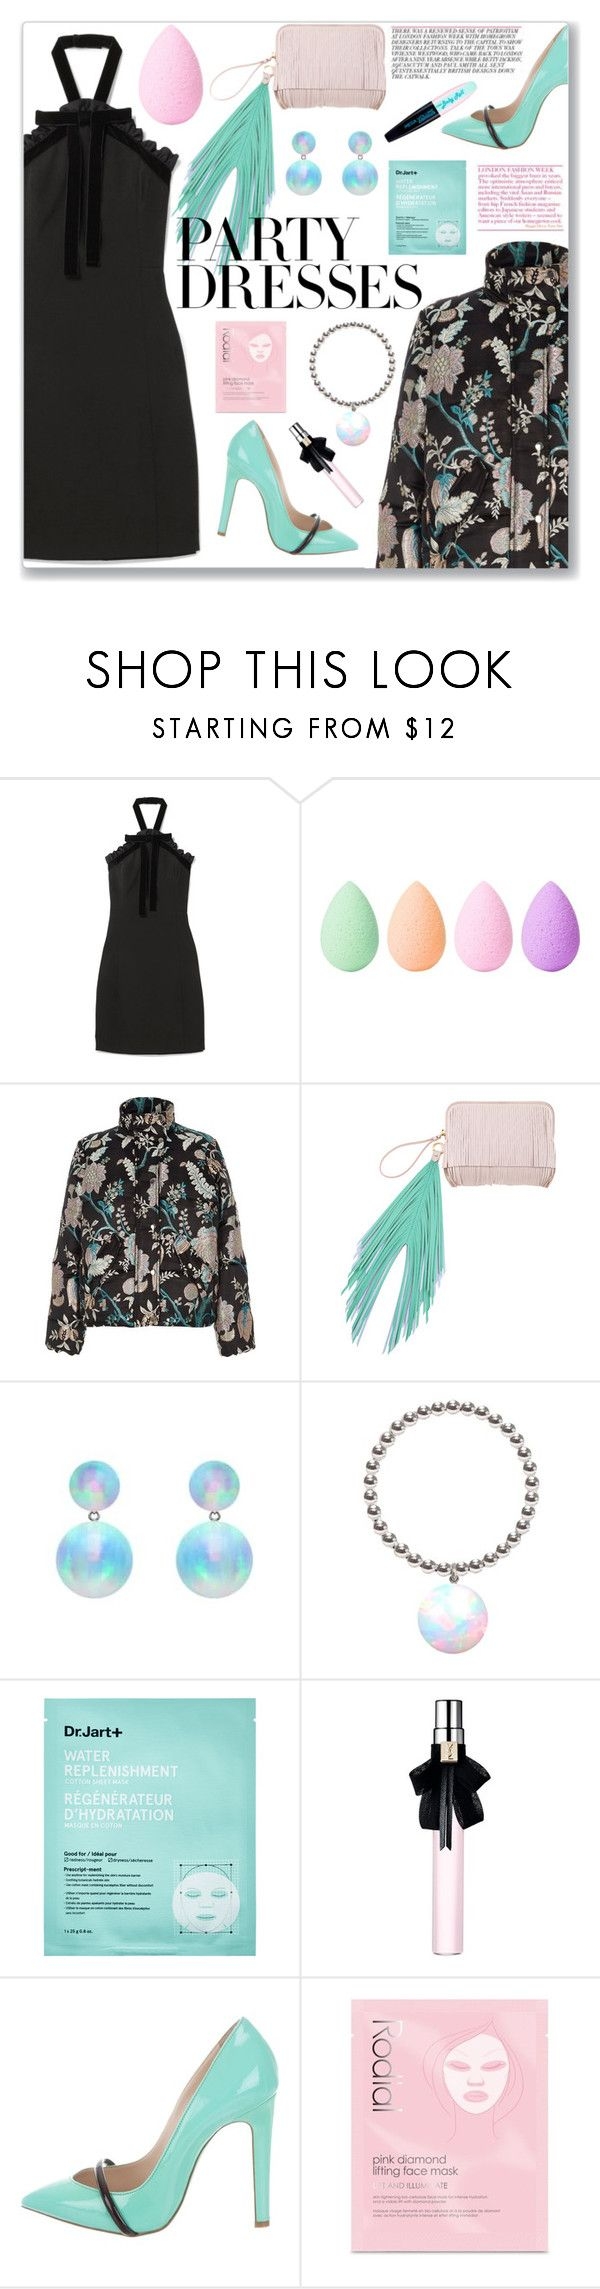 """How to wear a Velvet Mini Dress!"" by disco-mermaid ❤ liked on Polyvore featuring MICHAEL Michael Kors, beautyblender, River Island, The Volon, ORA Pearls, Sephora Collection, Yves Saint Laurent, Ruthie Davis, Rodial and L'Oréal Paris"